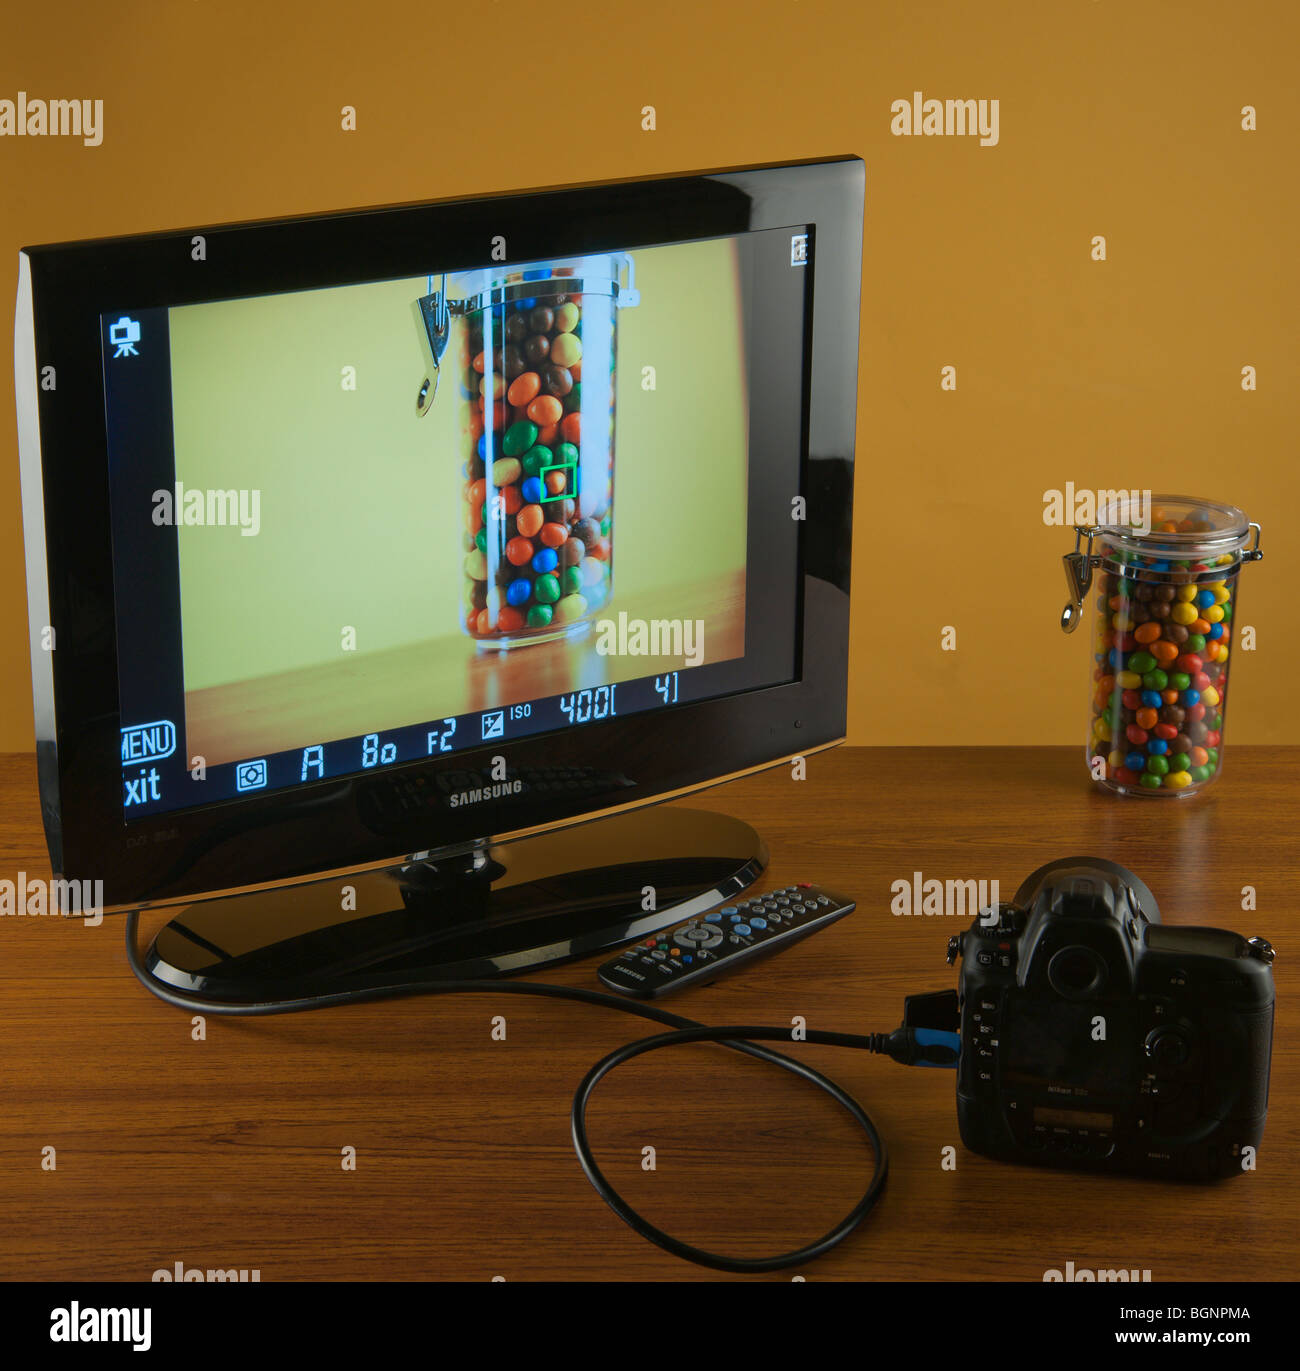 Nikon camera with HDMI live view displaying a picture to